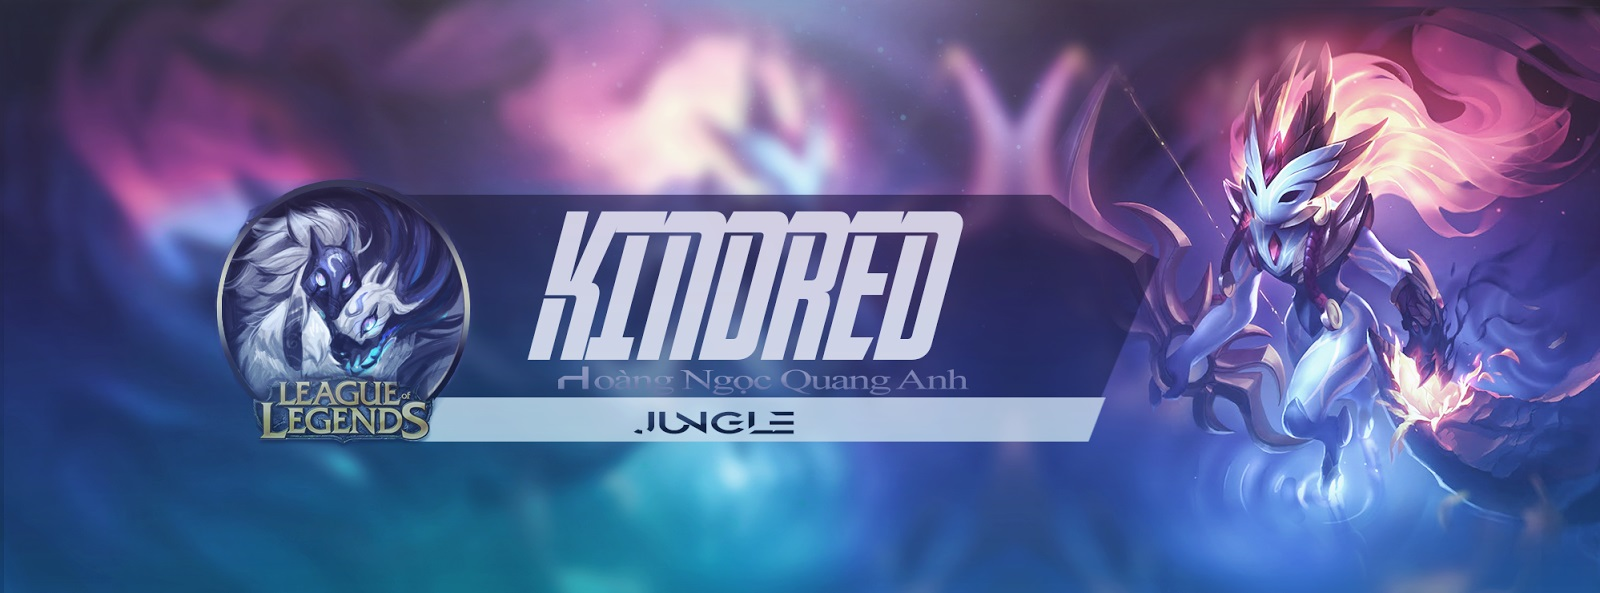 psd-kindred